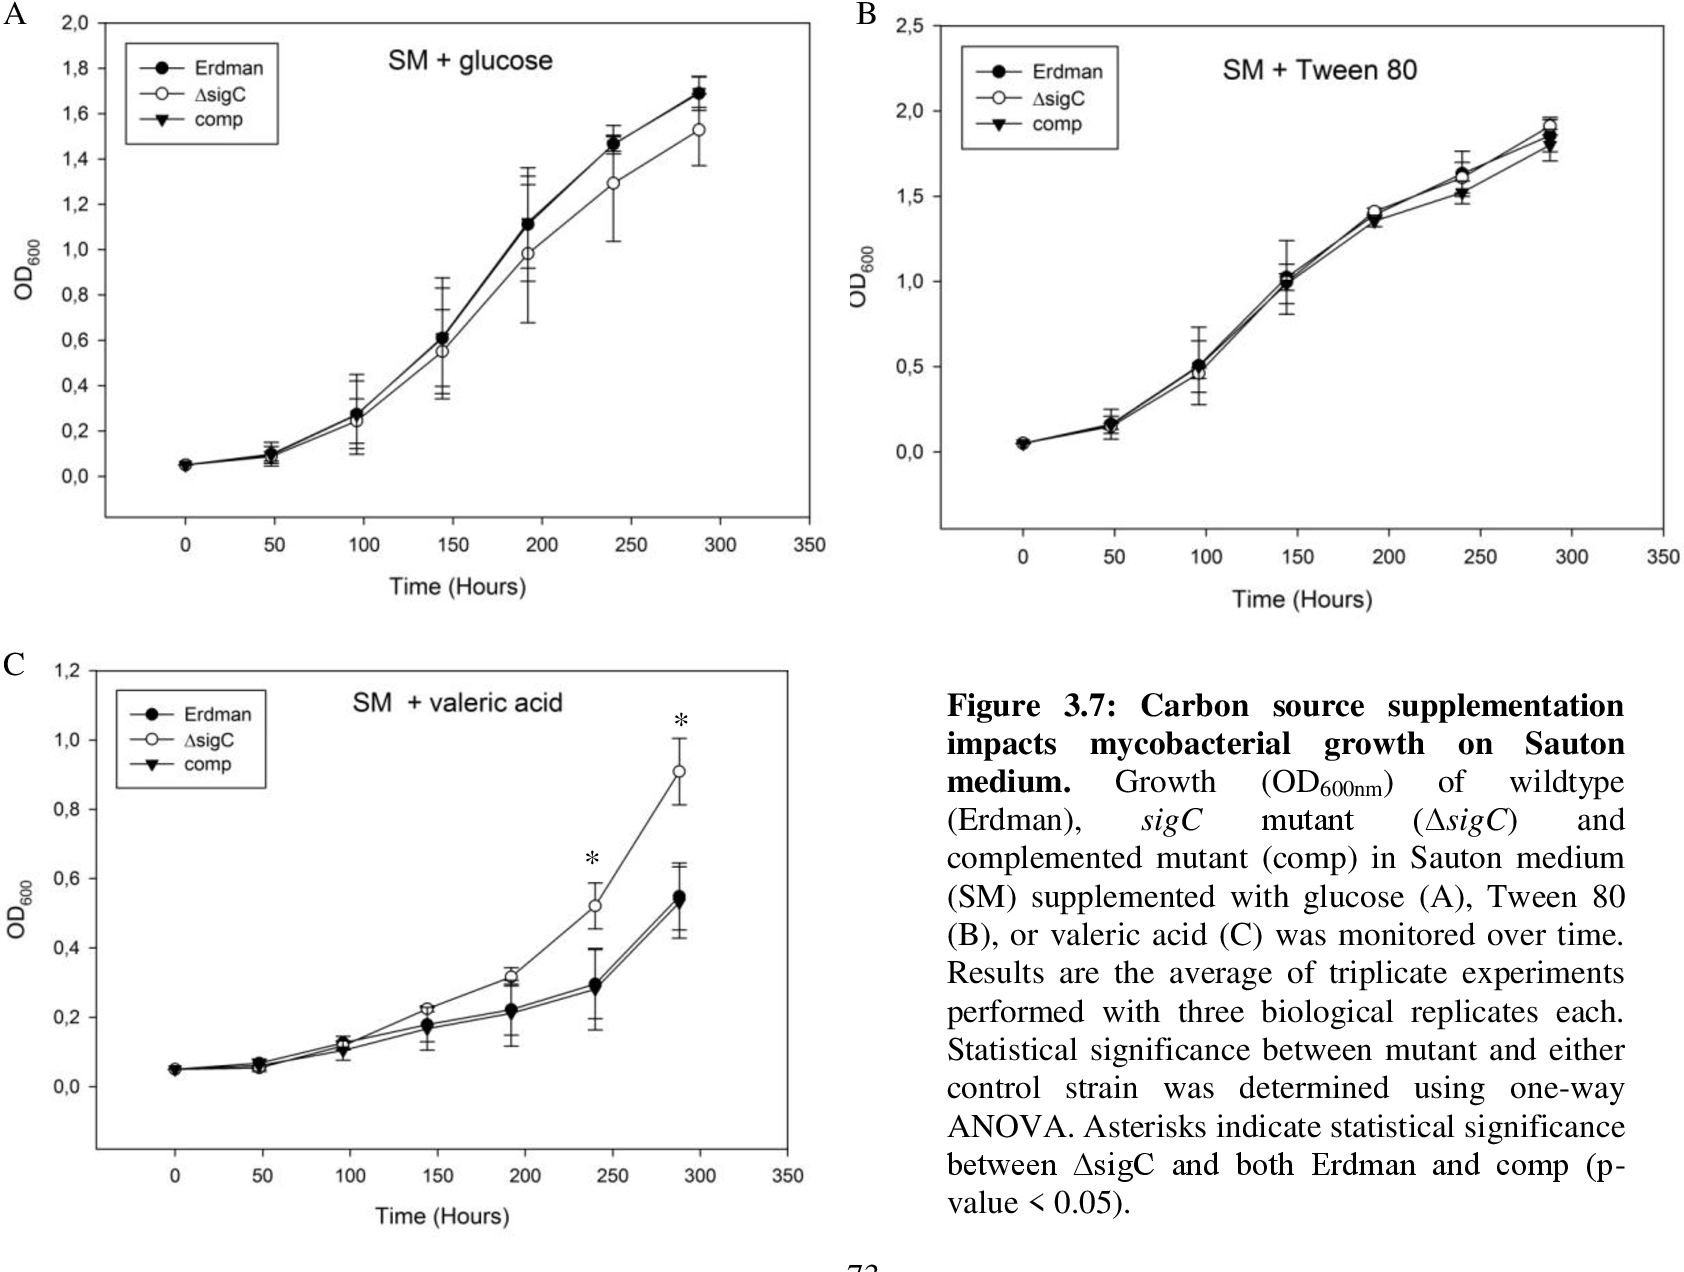 Figure 3.7: Carbon source supplementation impacts mycobacterial growth on Sauton medium. Growth (OD600nm) of wildtype (Erdman), sigC mutant (ΔsigC) and complemented mutant (comp) in Sauton medium (SM) supplemented with glucose (A), Tween 80 (B), or valeric acid (C) was monitored over time. Results are the average of triplicate experiments performed with three biological replicates each. Statistical significance between mutant and either control strain was determined using one-way ANOVA. Asterisks indicate statistical significance between ΔsigC and both Erdman and comp (pvalue < 0.05).